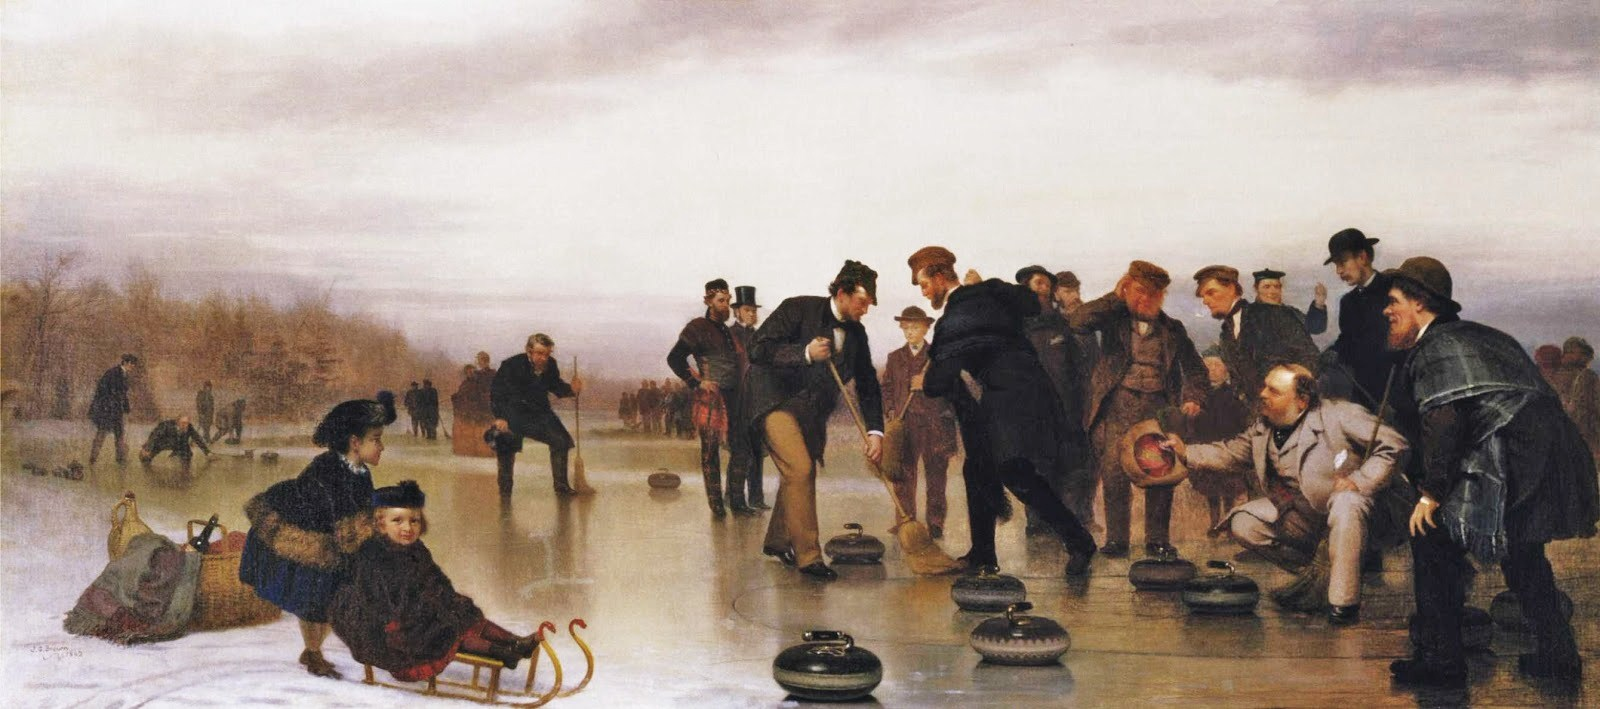 1 John George Brown (American artist, 1831-1913) Curling, a Scottish Game, at Central Park